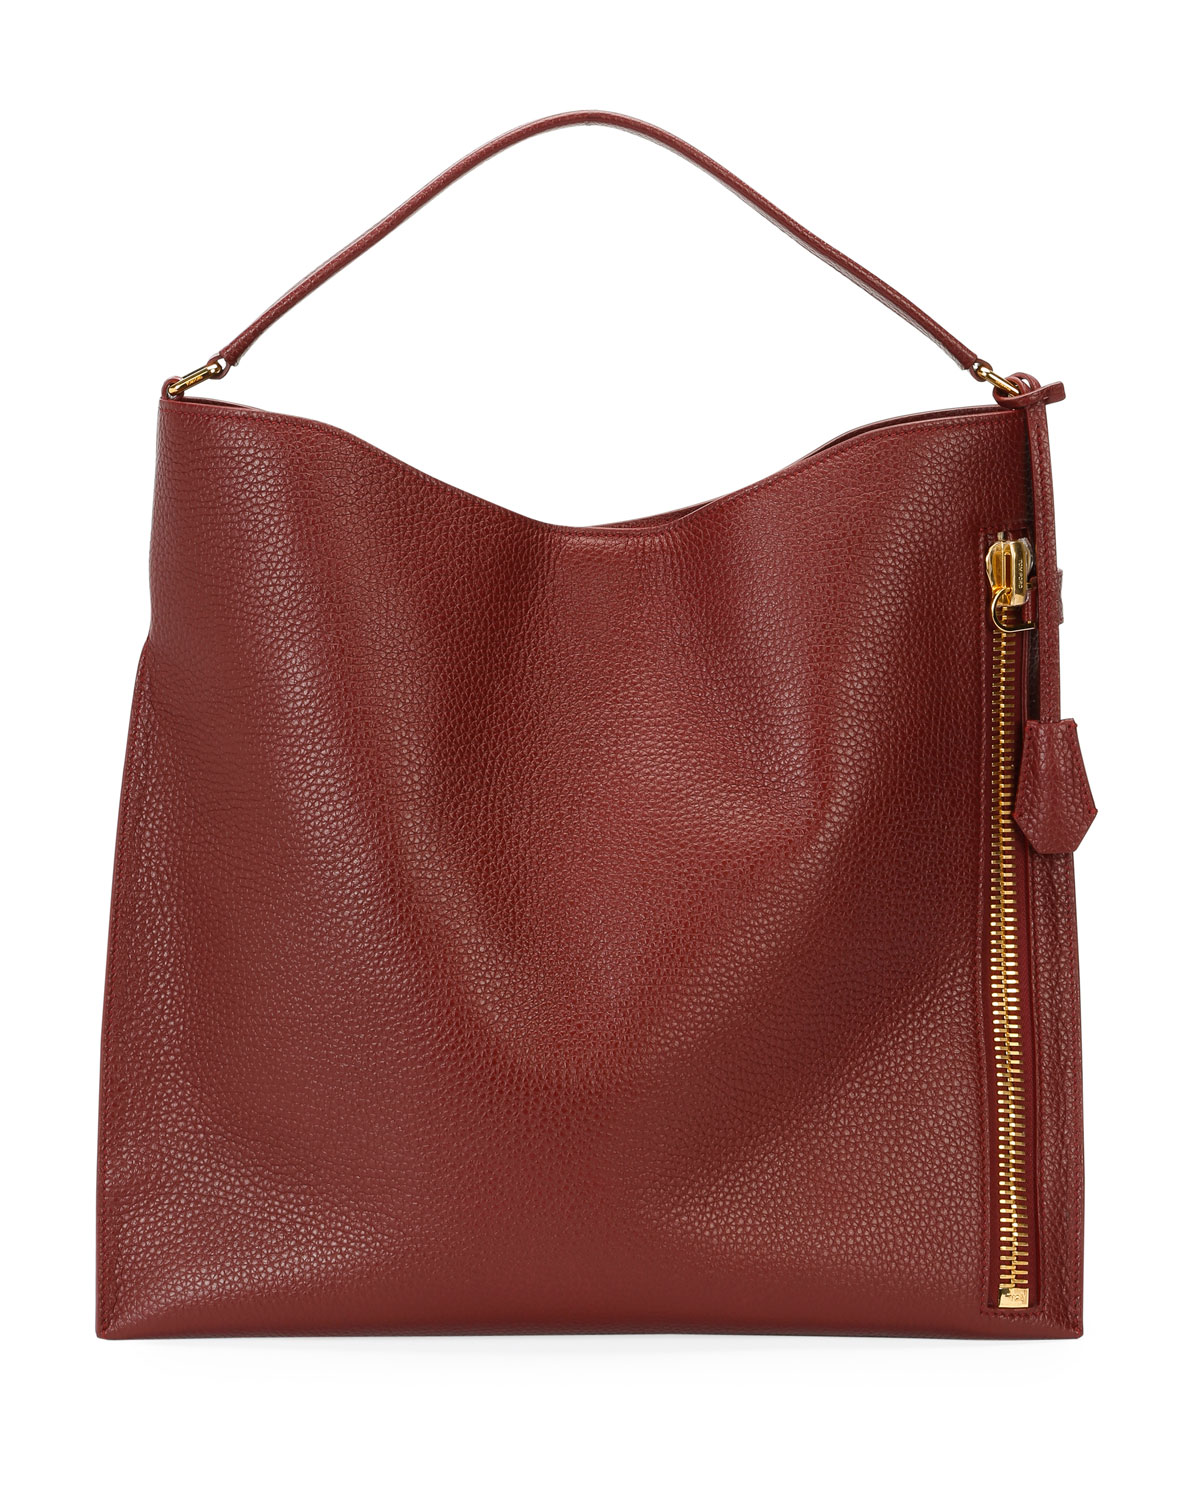 910300b7a1 Quick Look. TOM FORD · Large Alix Tote Bag